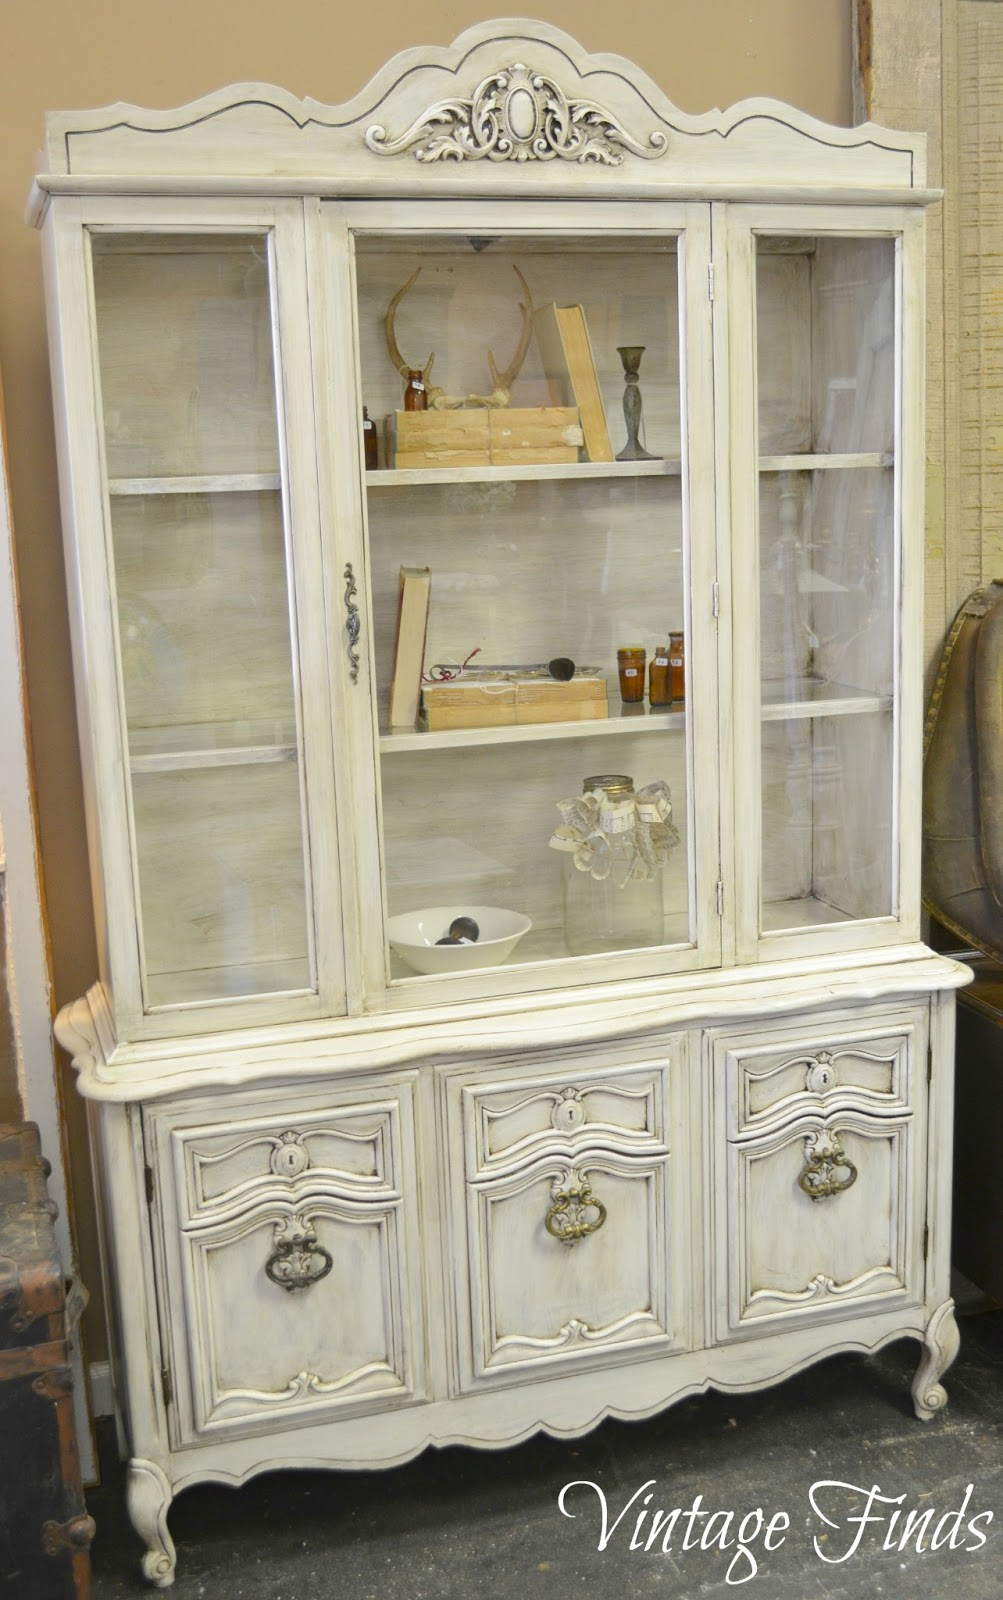 We Also Scraped The Gold Decals Off Of The Glass Panes For A More  Clean Lined Look. This Dated China Cabinet ...